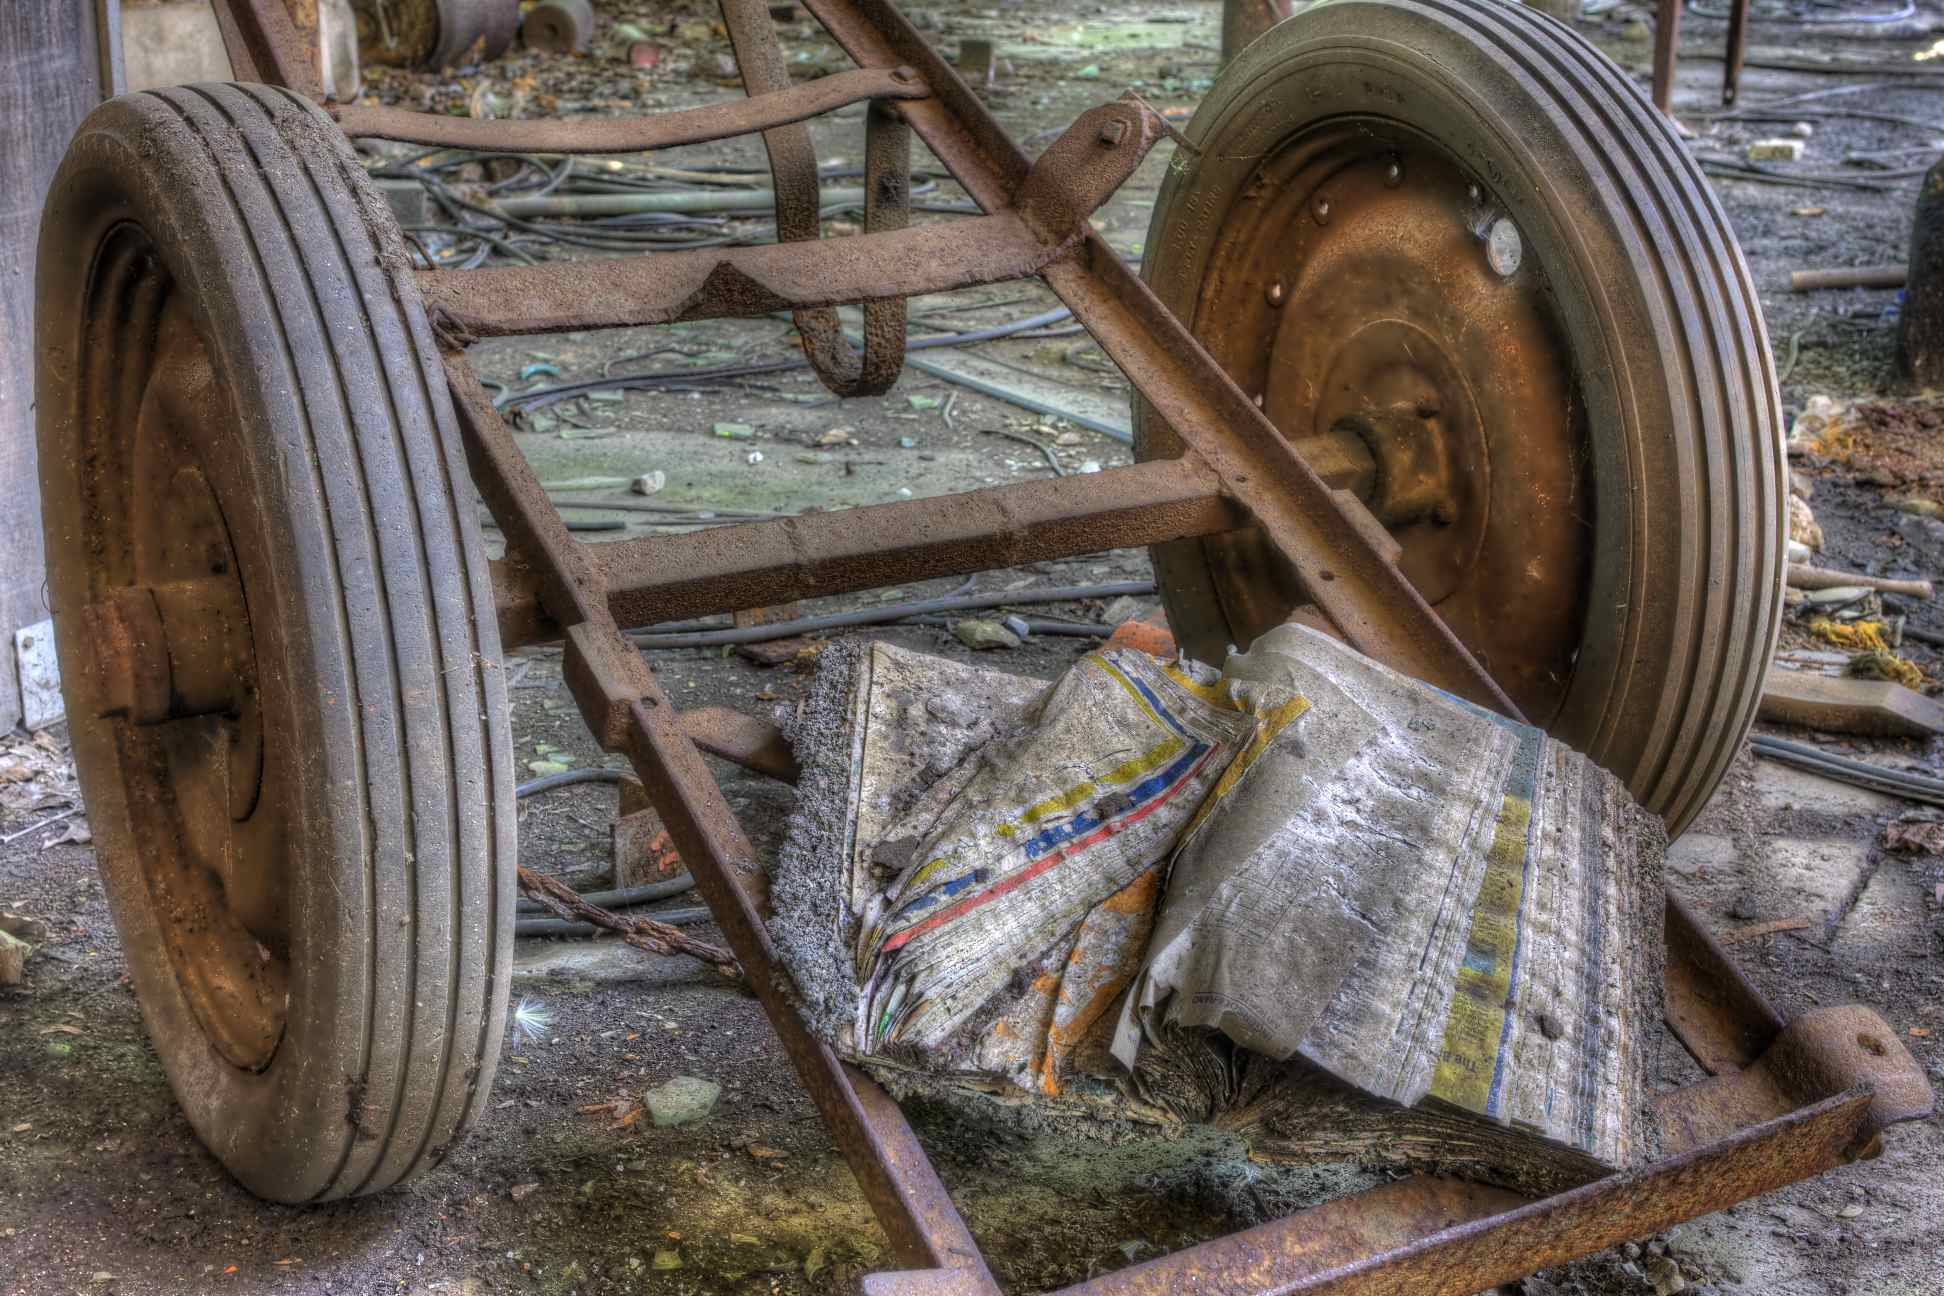 Fort Pitt Foundry: Dilapidated Phone Book and Cart